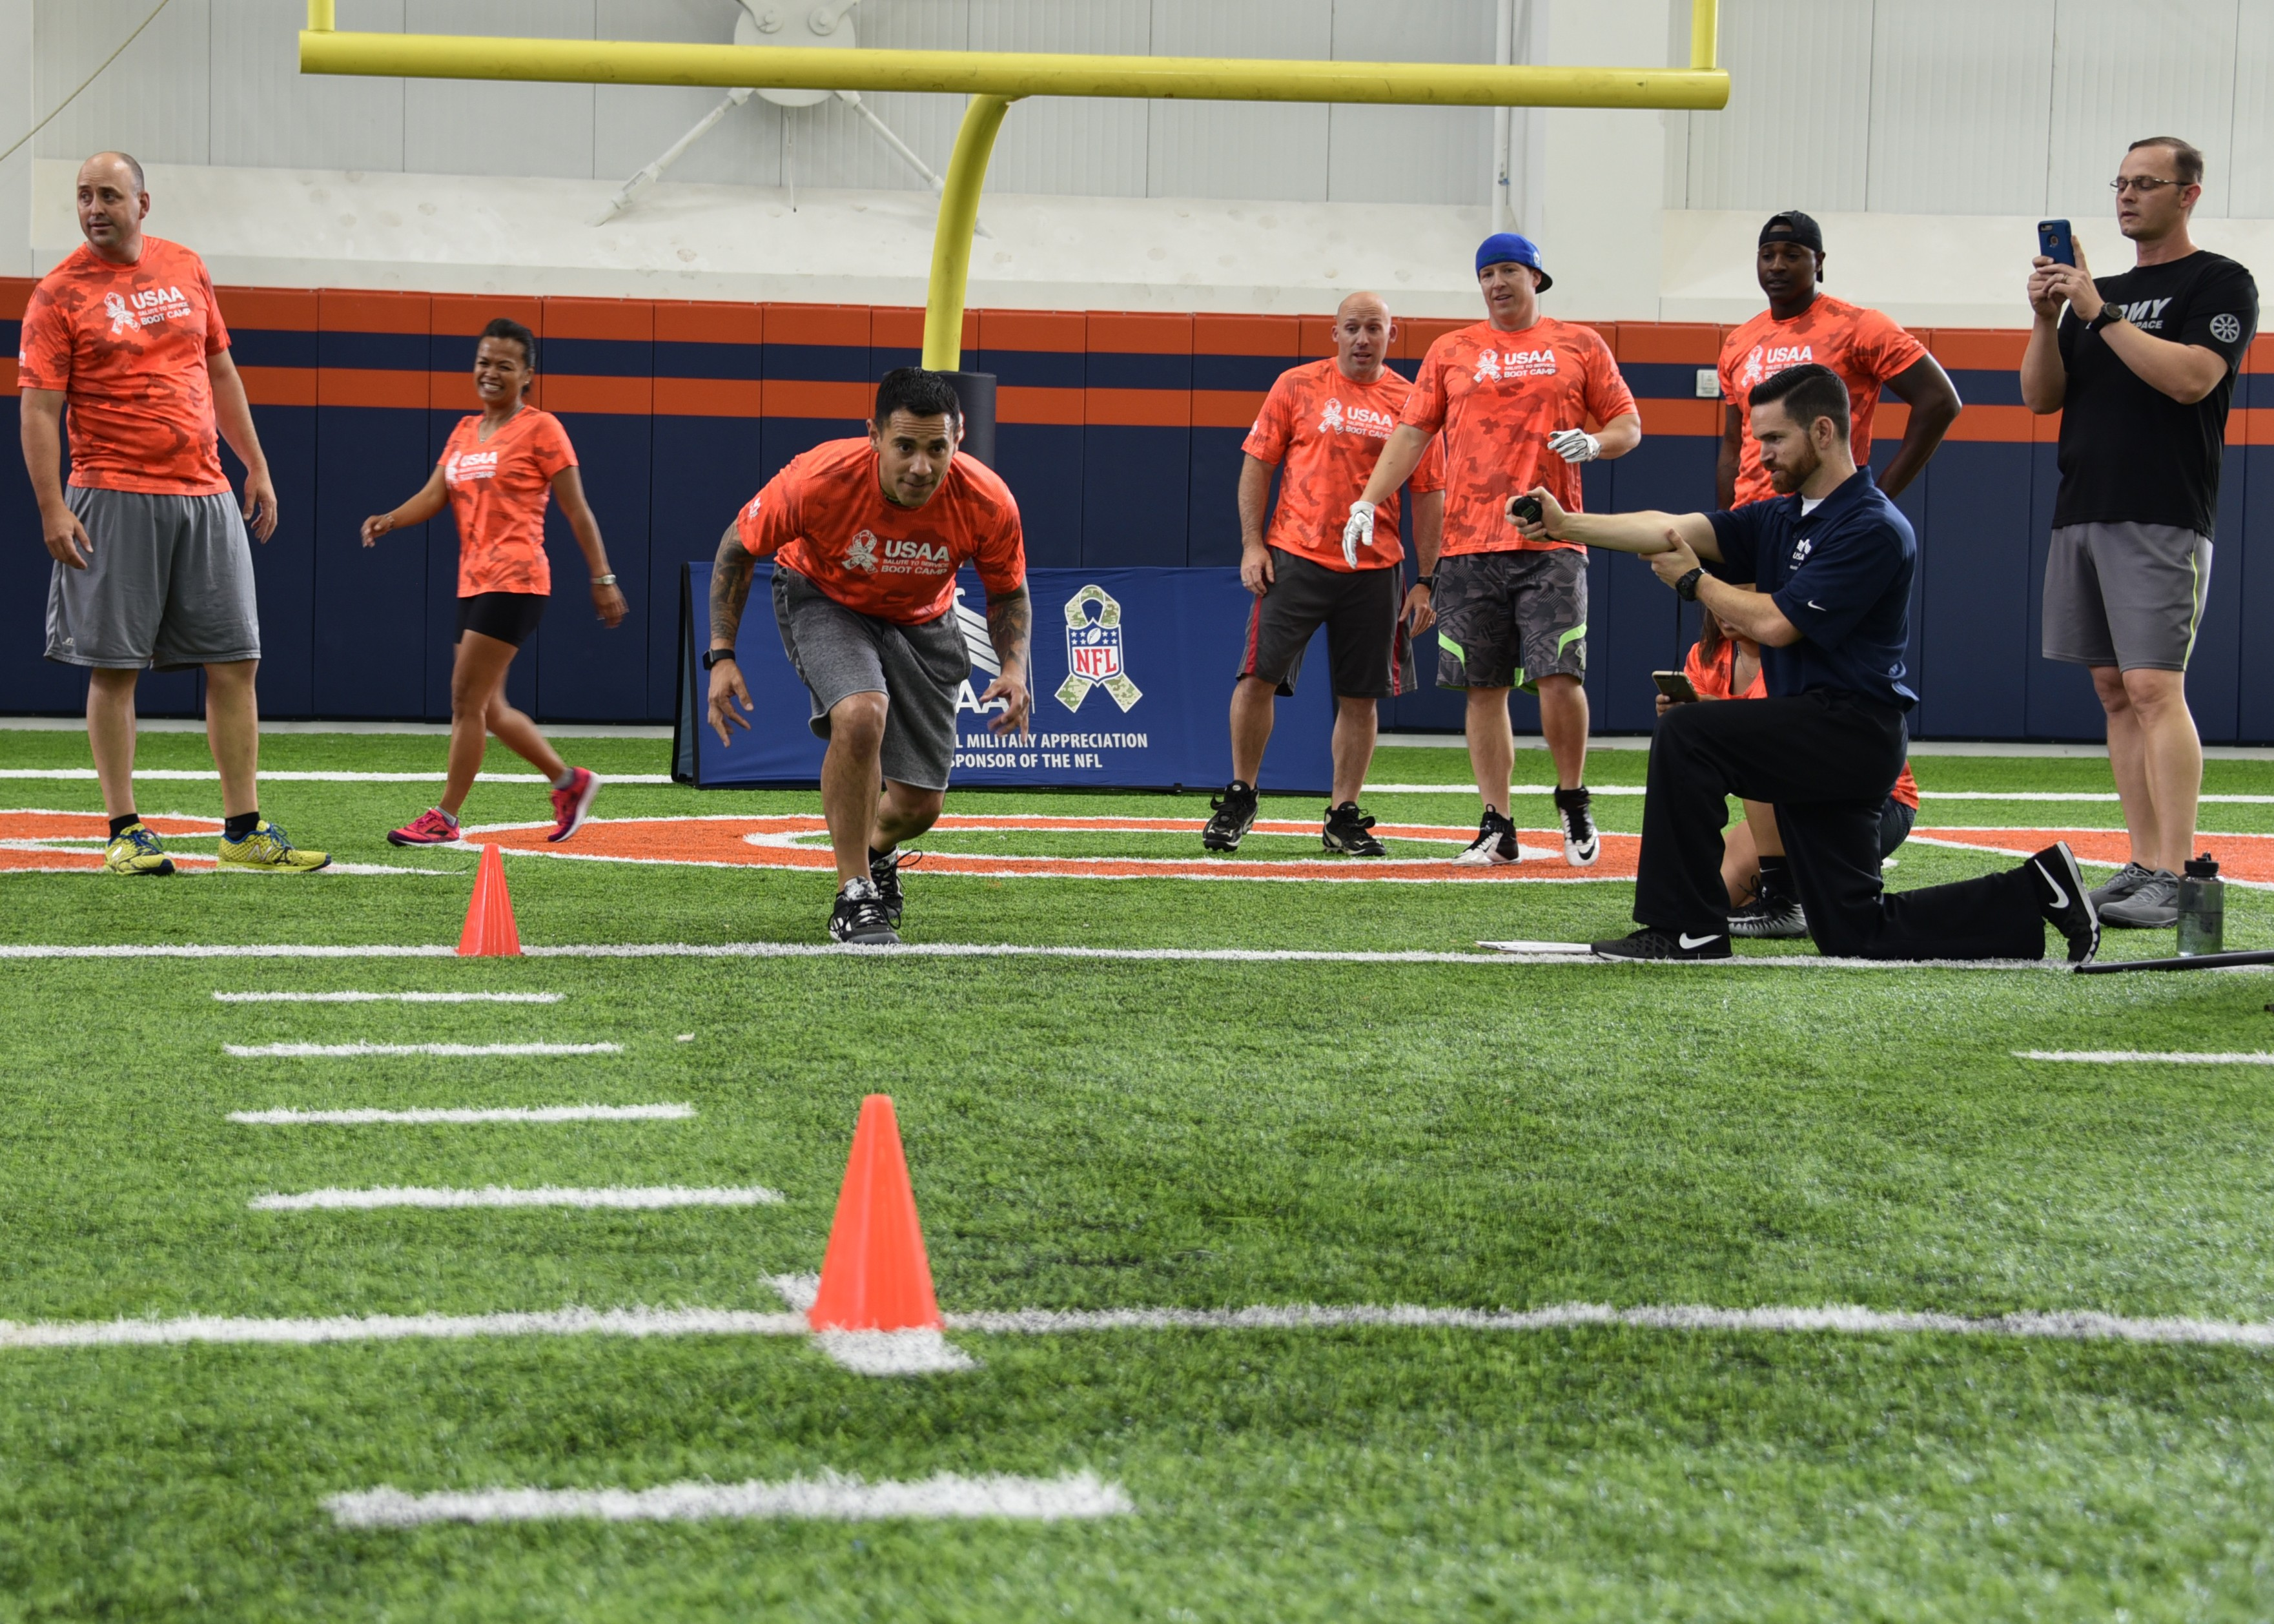 Team SMDC wins USAA Broncos training camp competition  db6546b4e